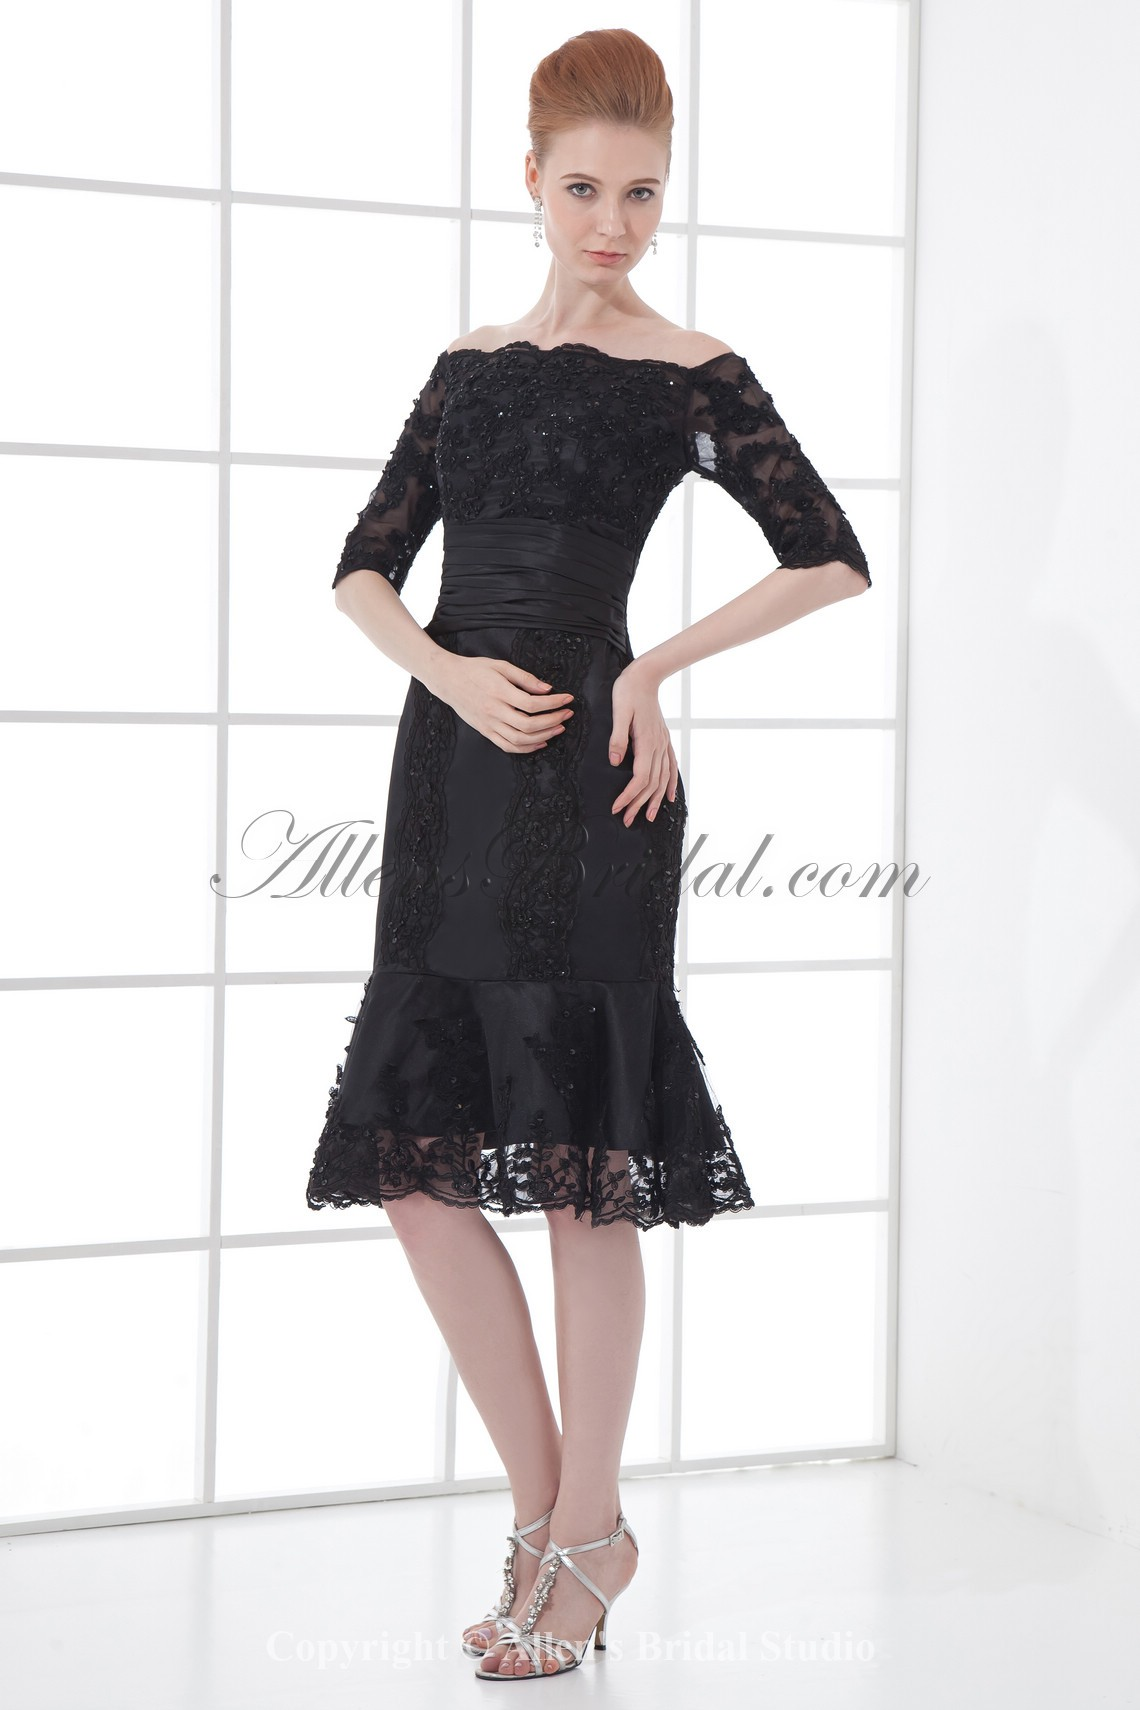 /75-596/lace-off-the-shoulder-neckline-sheath-knee-length-half-sleeves-cocktail-dress.jpg